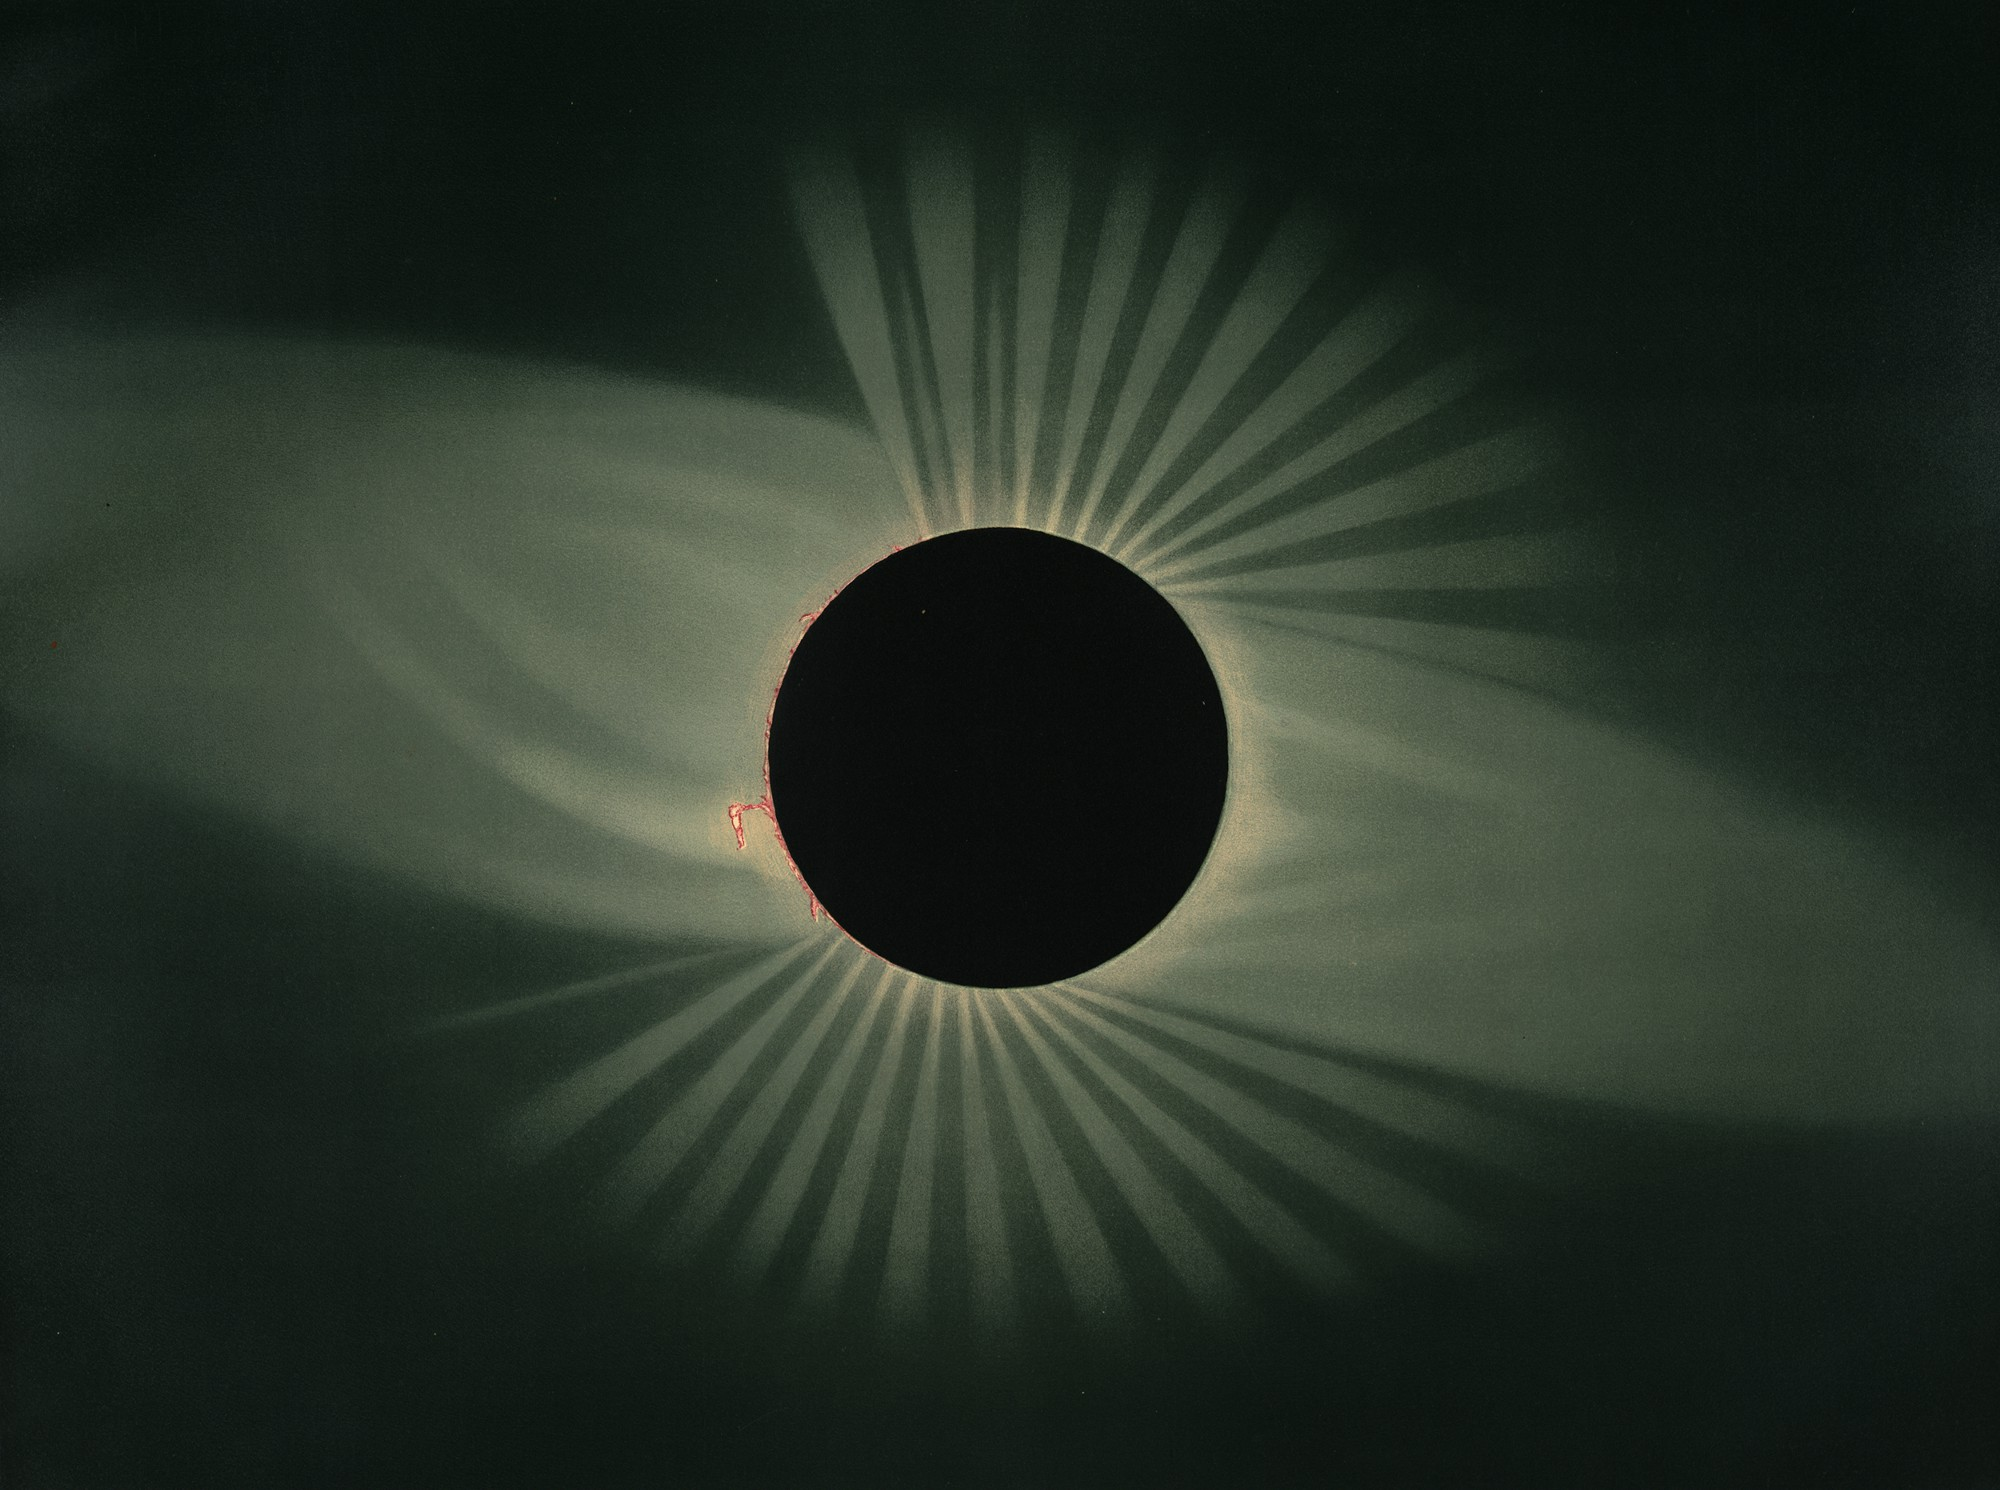 Solar eclipse by E.Trouvelot 1878